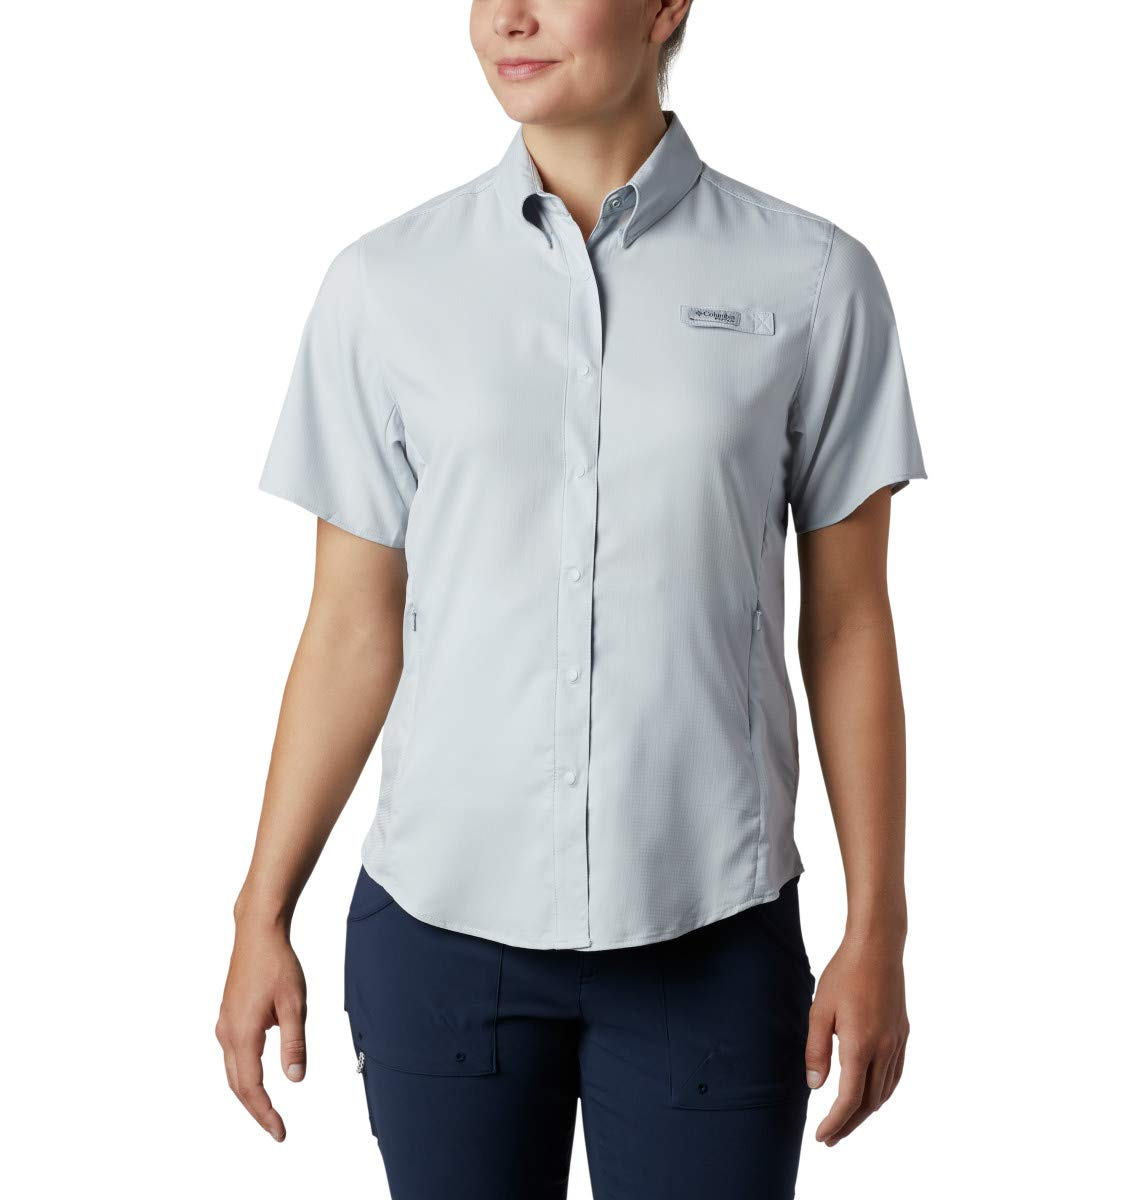 Columbia Women's Tamiami Ii Short Sleeve Shirt, Cirrus Grey, X-Large by Columbia